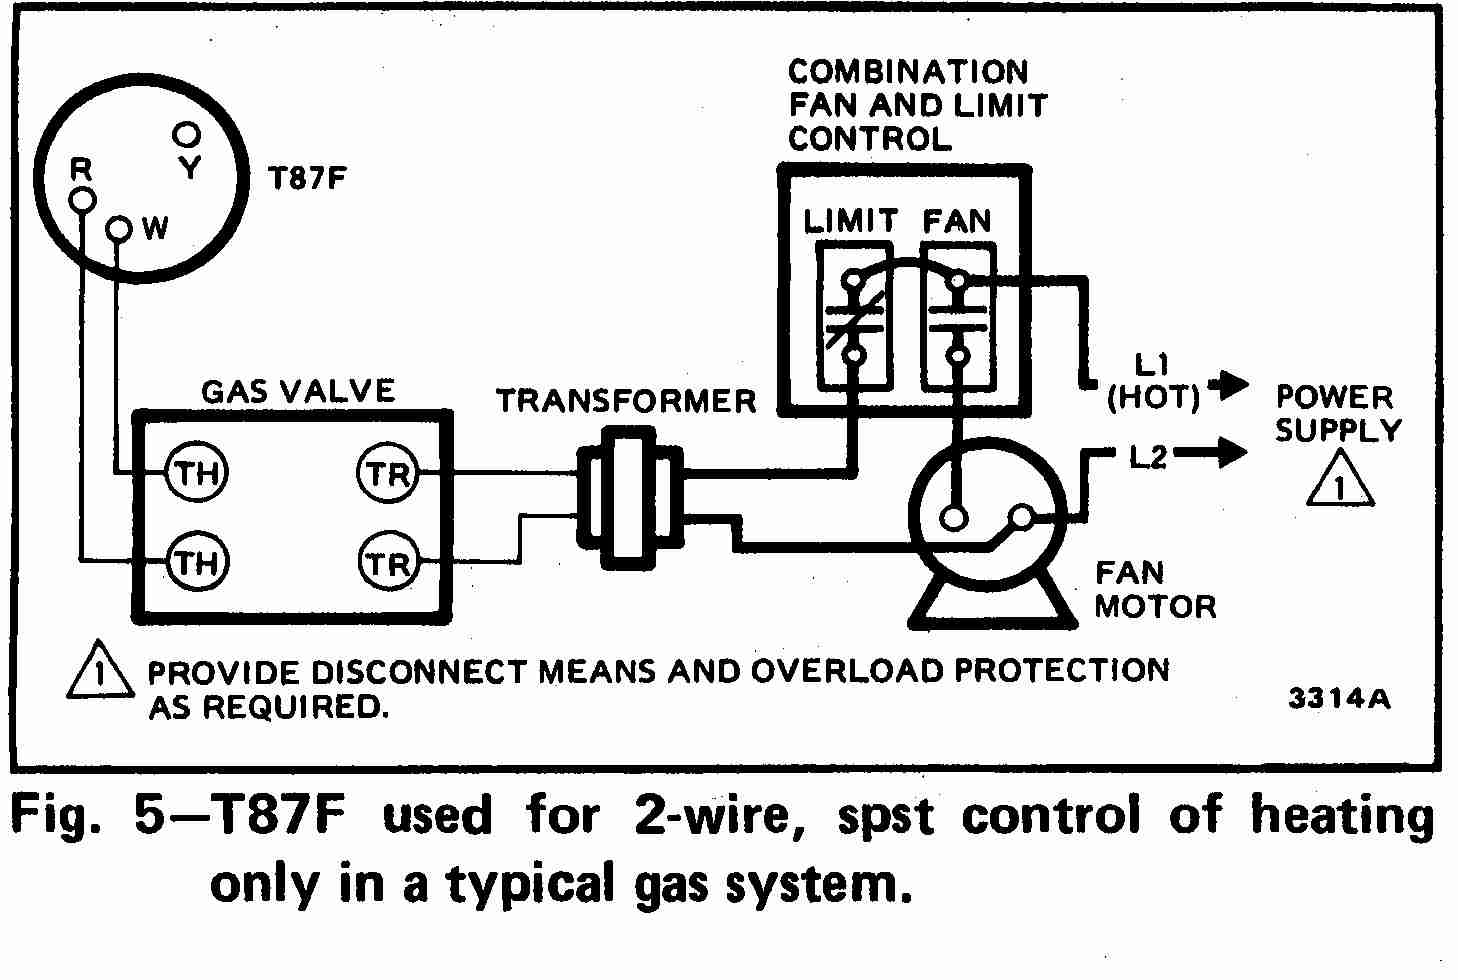 TT_T87F_0002_2Wg_DJF room thermostat wiring diagrams for hvac systems wiring up thermostat at n-0.co